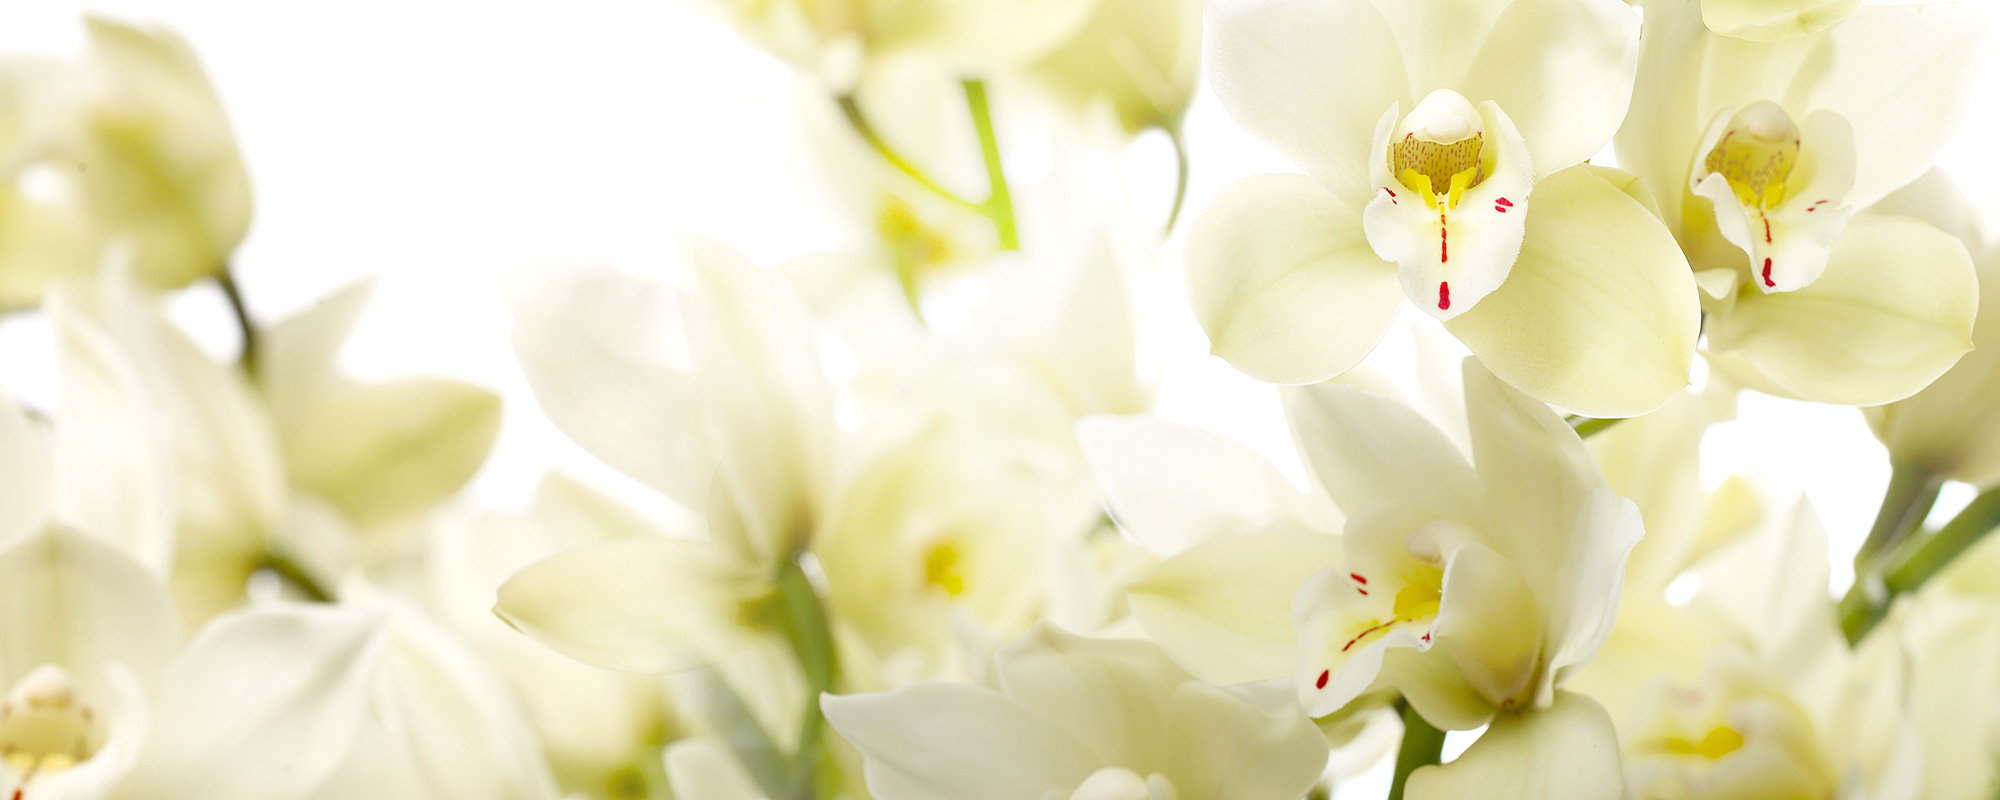 cymbidium-wit-header1